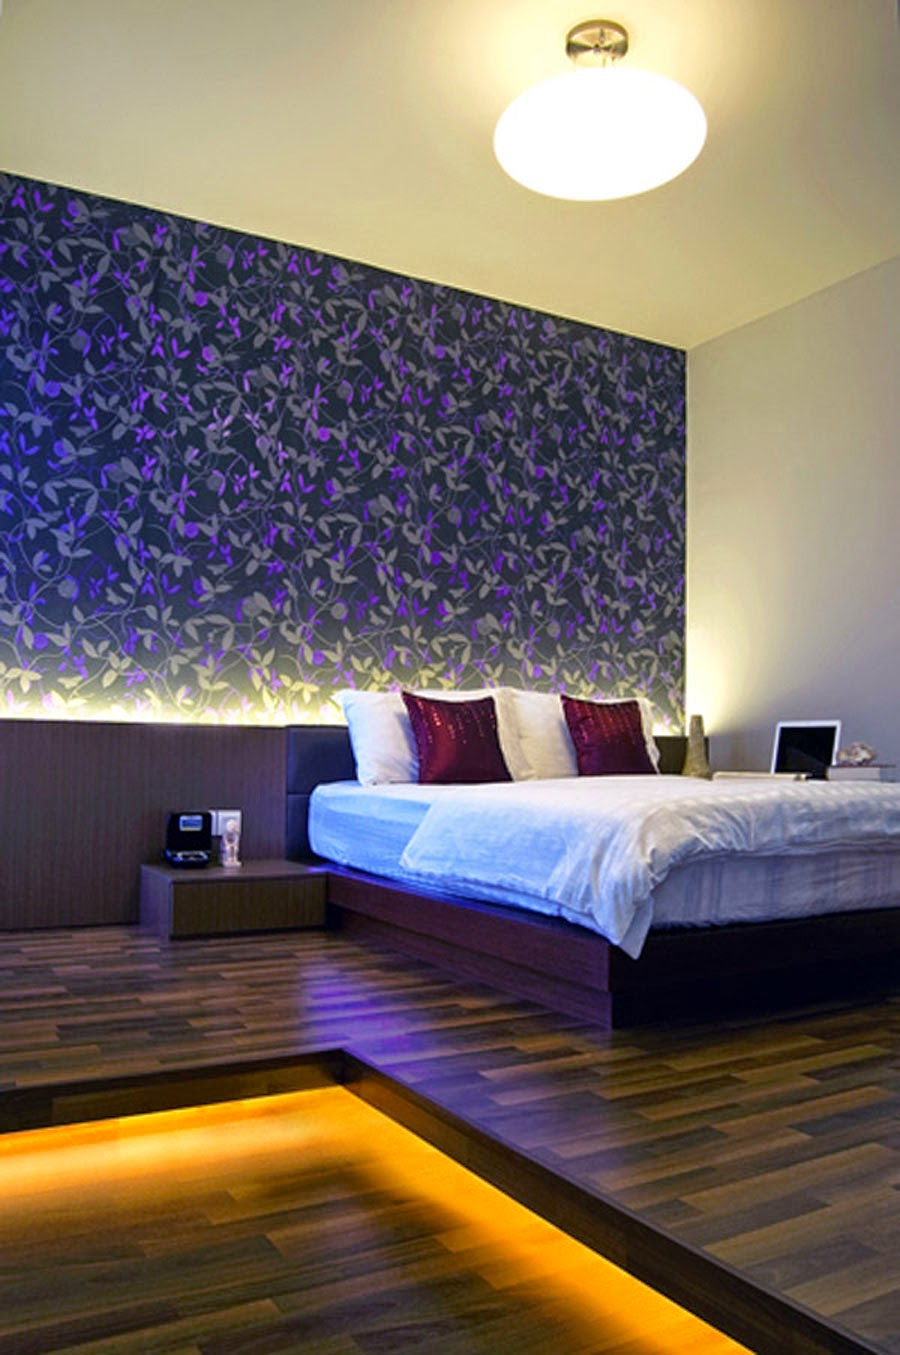 Small bedroom lighting ideas the interior designs Apartment bedroom ideas